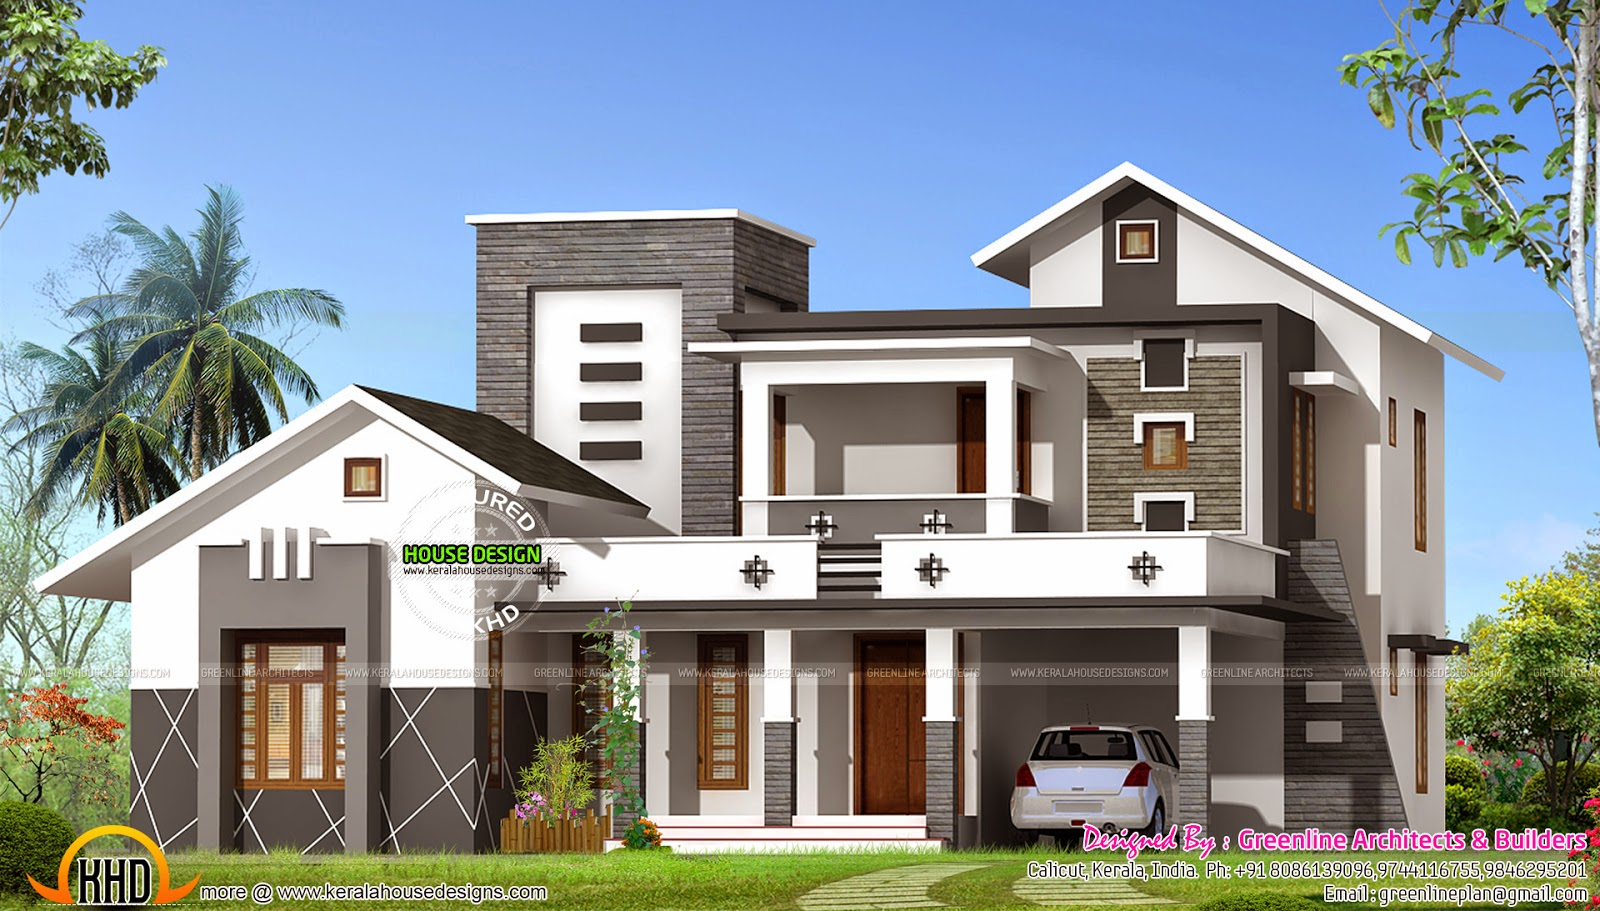 2400 Sq Ft Mixed Roof House Kerala Home Design And Floor